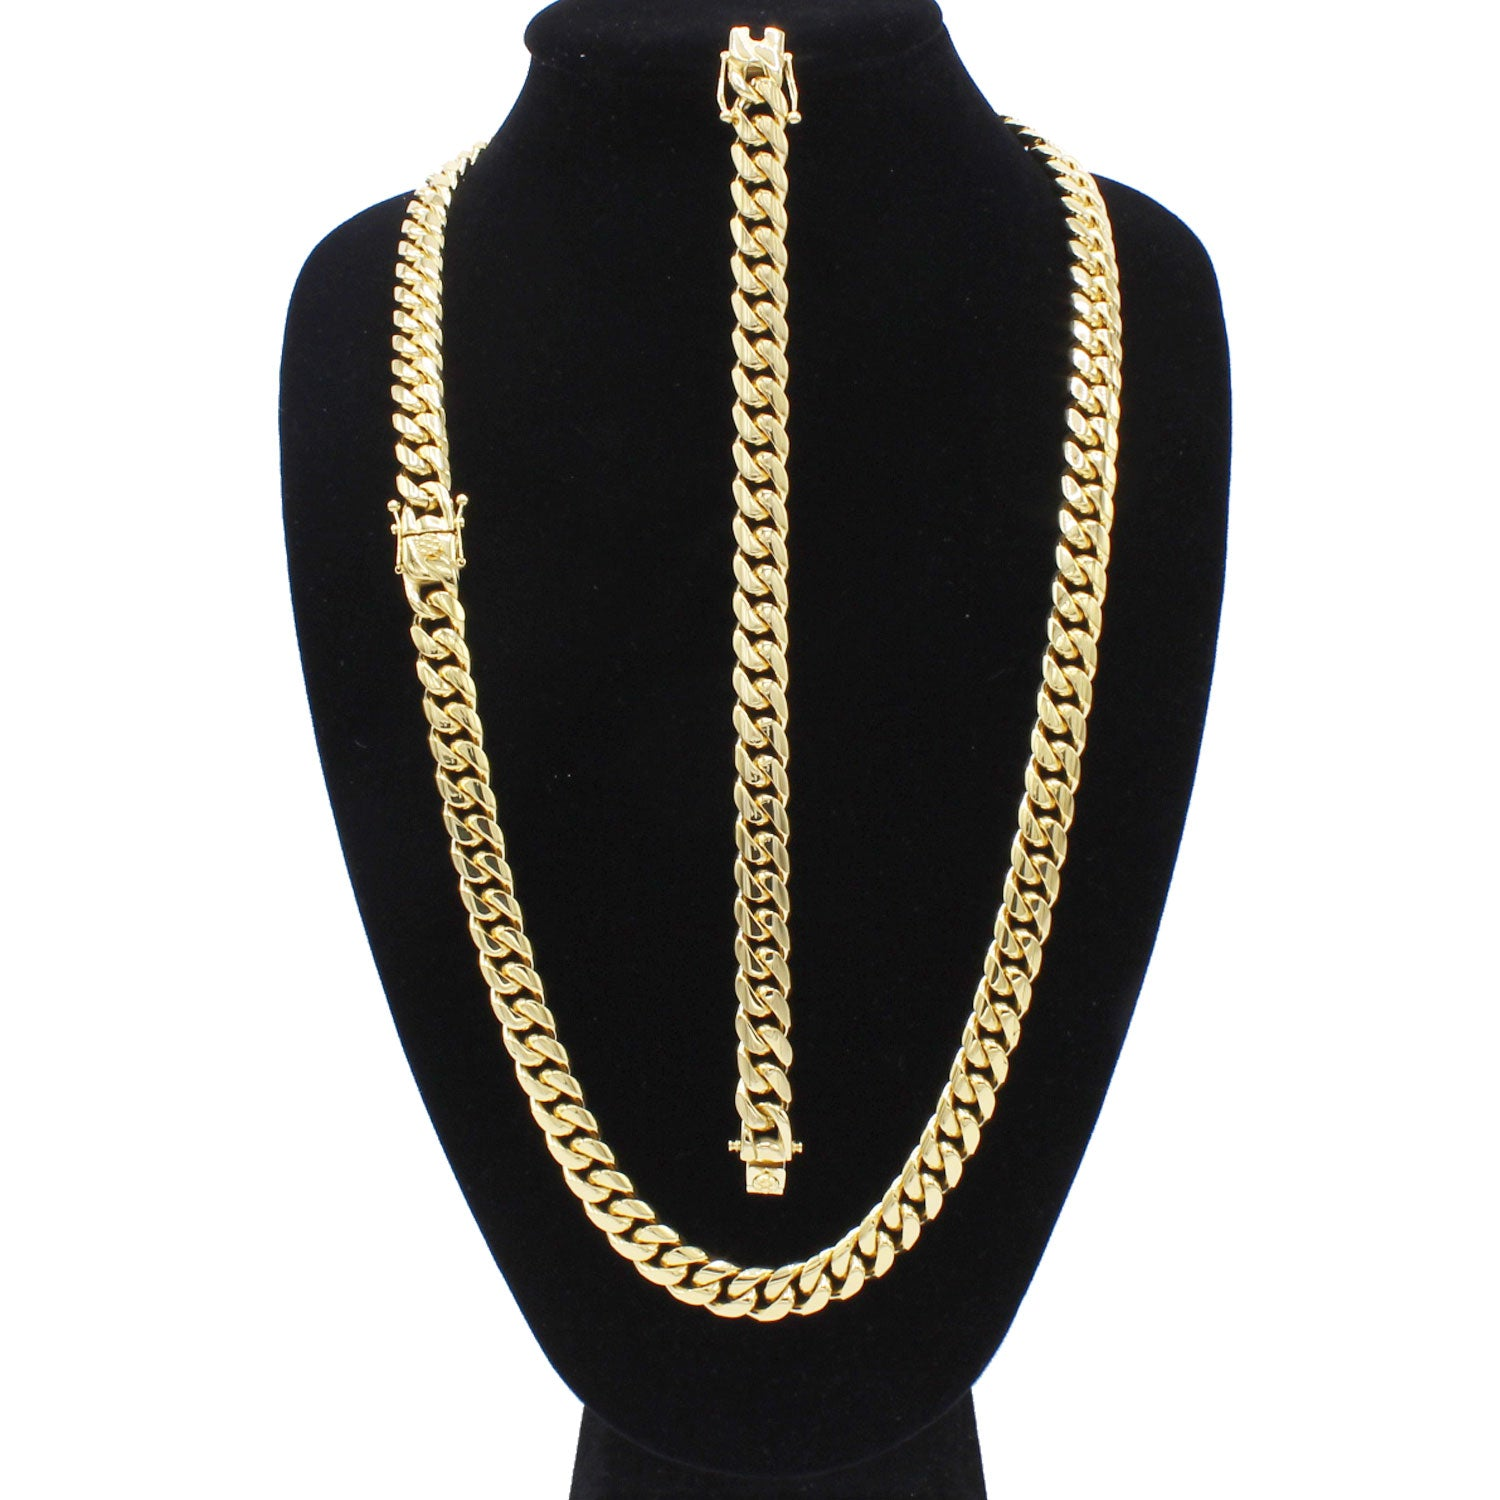 Miami Cuban Link Chains